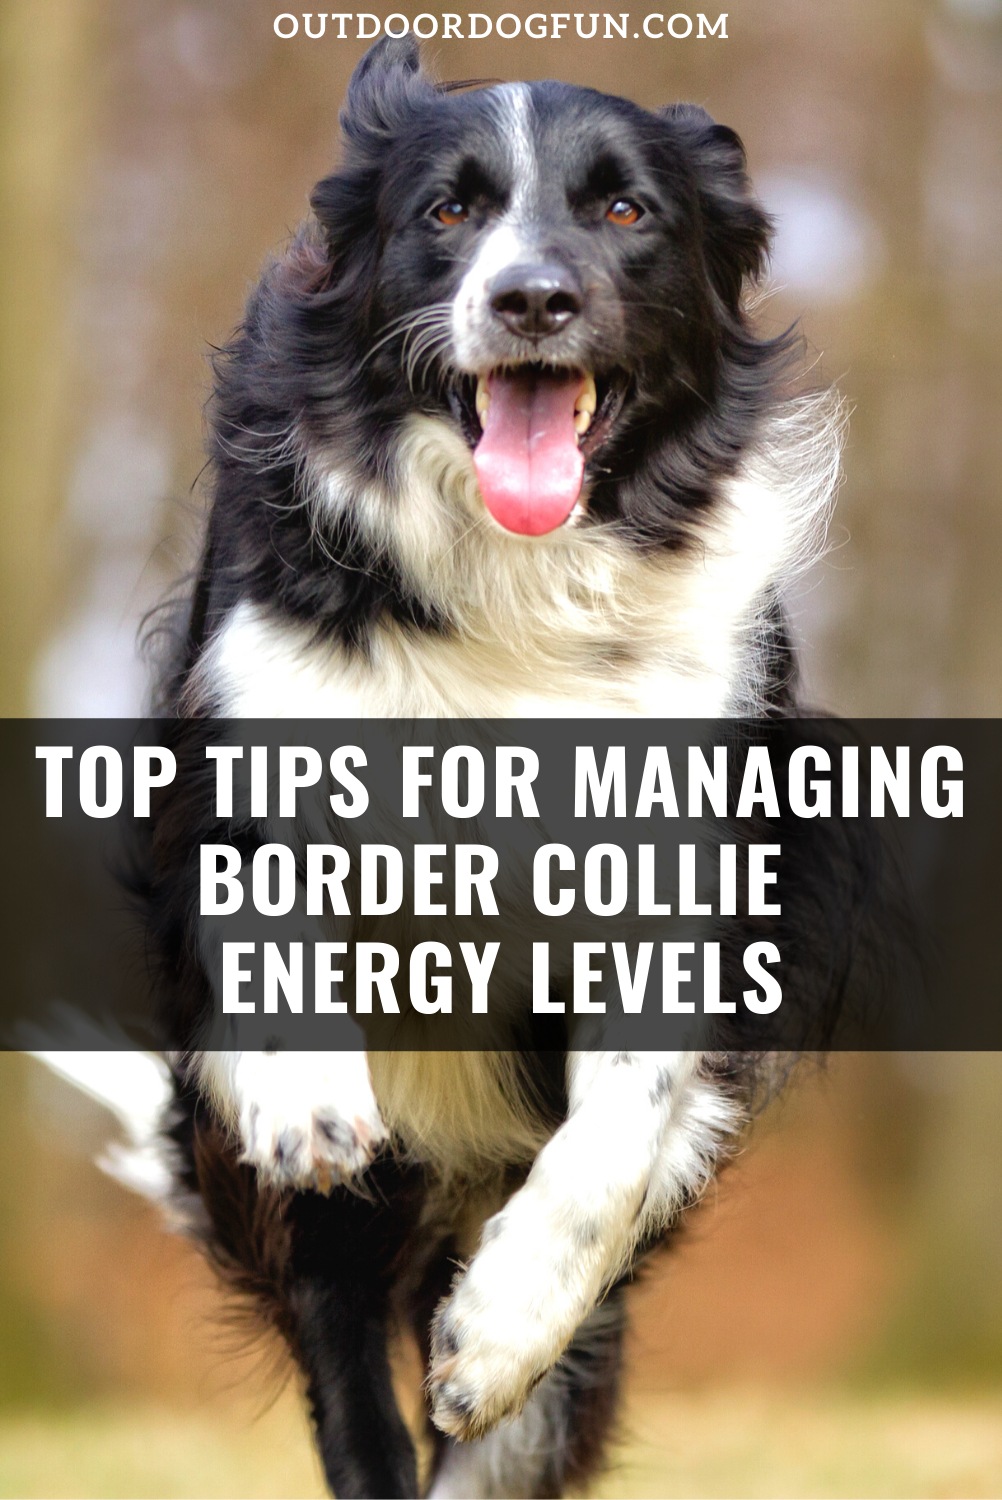 Top Tips For Managing Border Collie Energy Levels In 2020 Border Collie Puppy Training Collie Border Collie